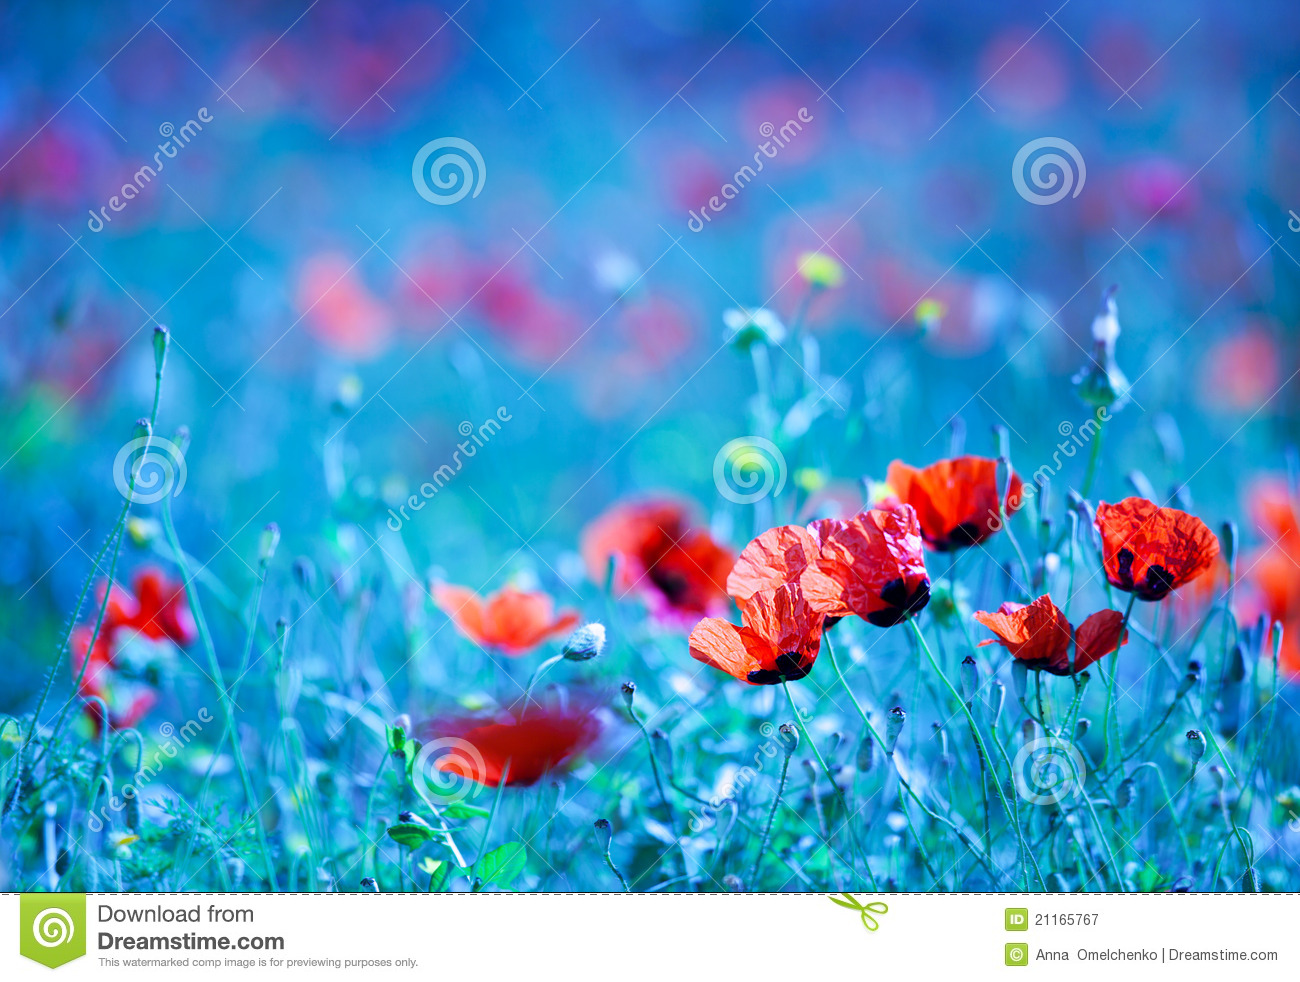 Poppy flower field at night royalty free stock photography image - Royalty Free Stock Photo Background Blue Dreamy Field Flower Focus Natural Nature Night Poppy